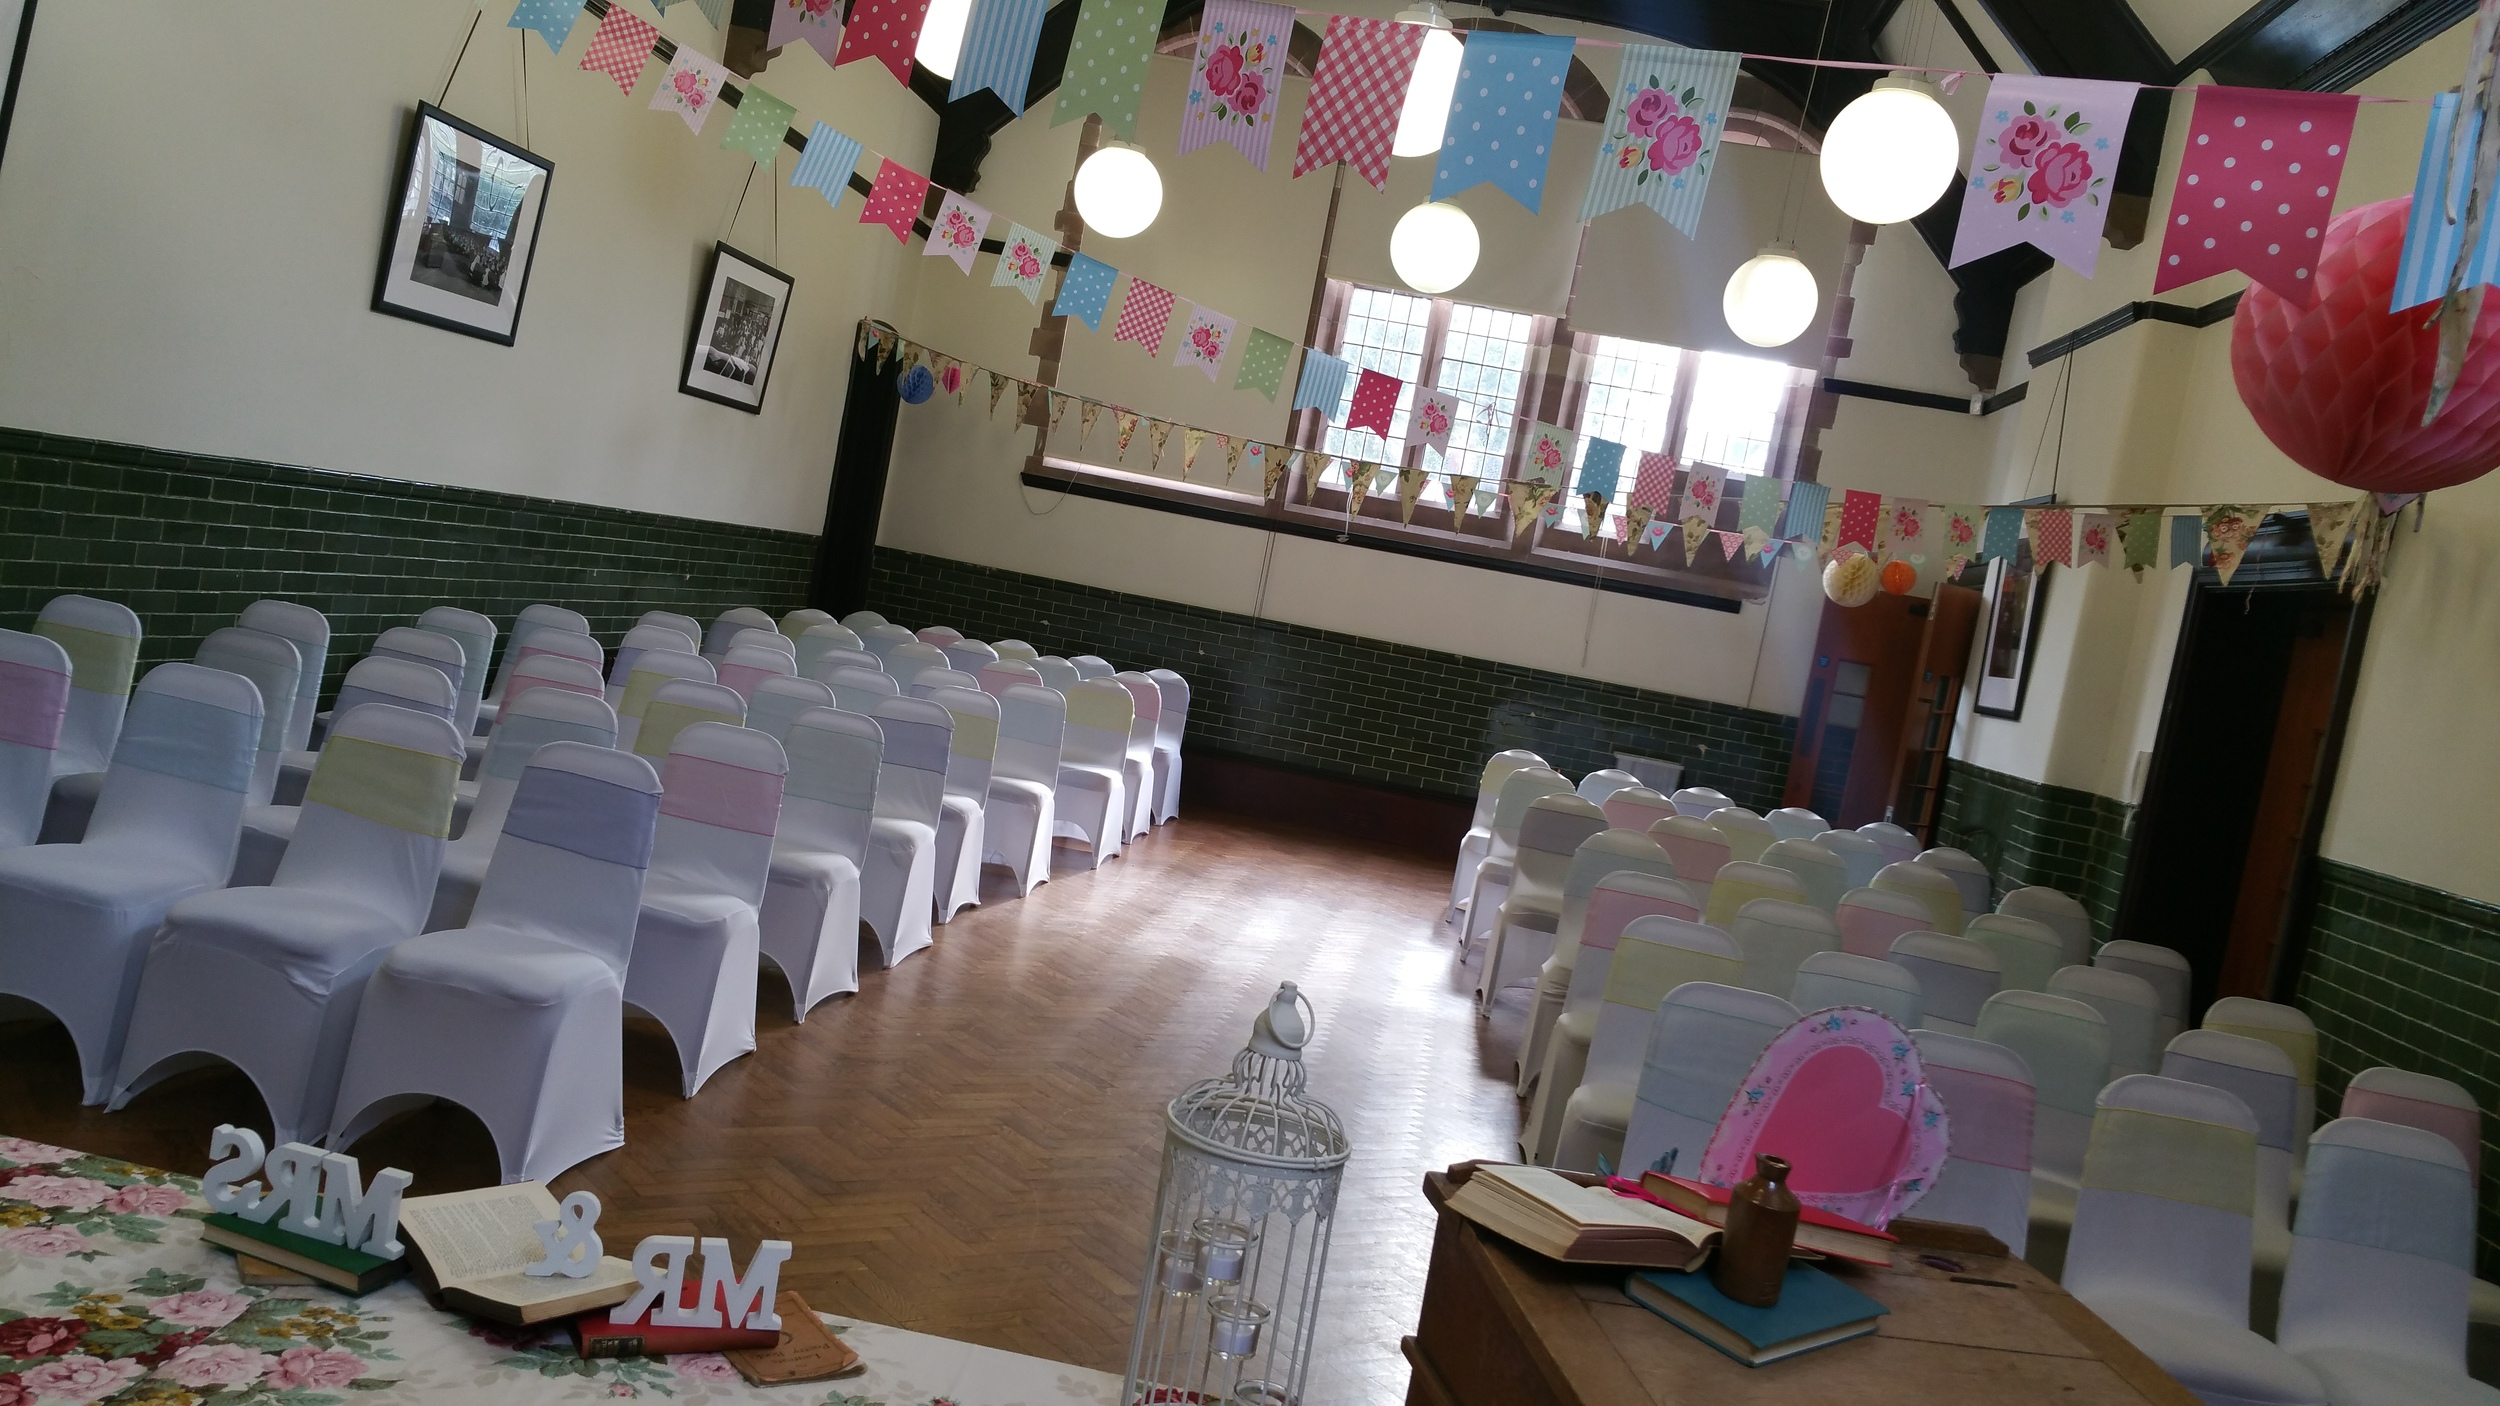 The Lyceum in Port Sunlight provides the perfect canvas for this look!